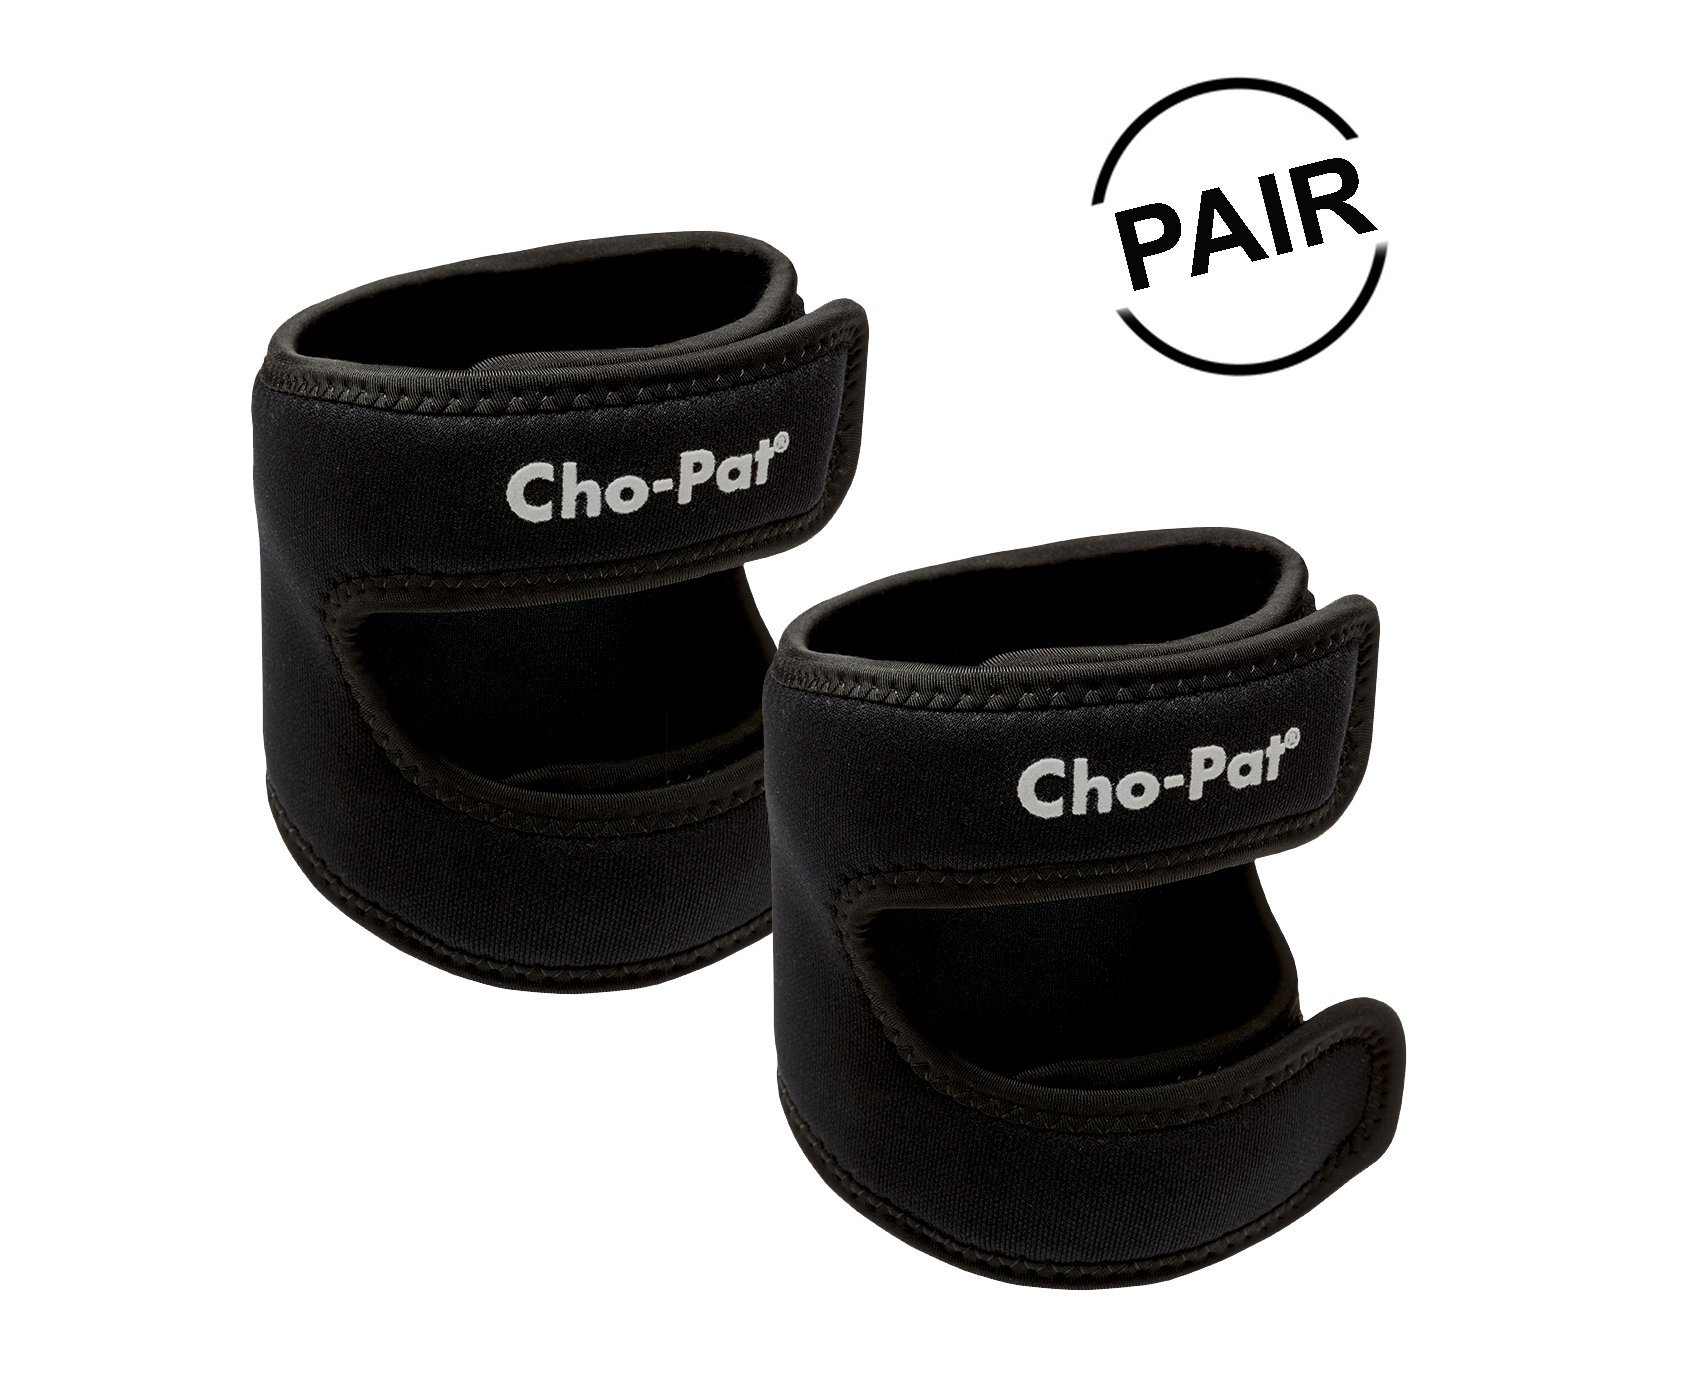 Cho-Pat Dual Action Knee Strap (Pair) - Provides Full Mobility & Pain Relief for Weakened Knees - Black (Small, 12''-14'') by Cho-Pat